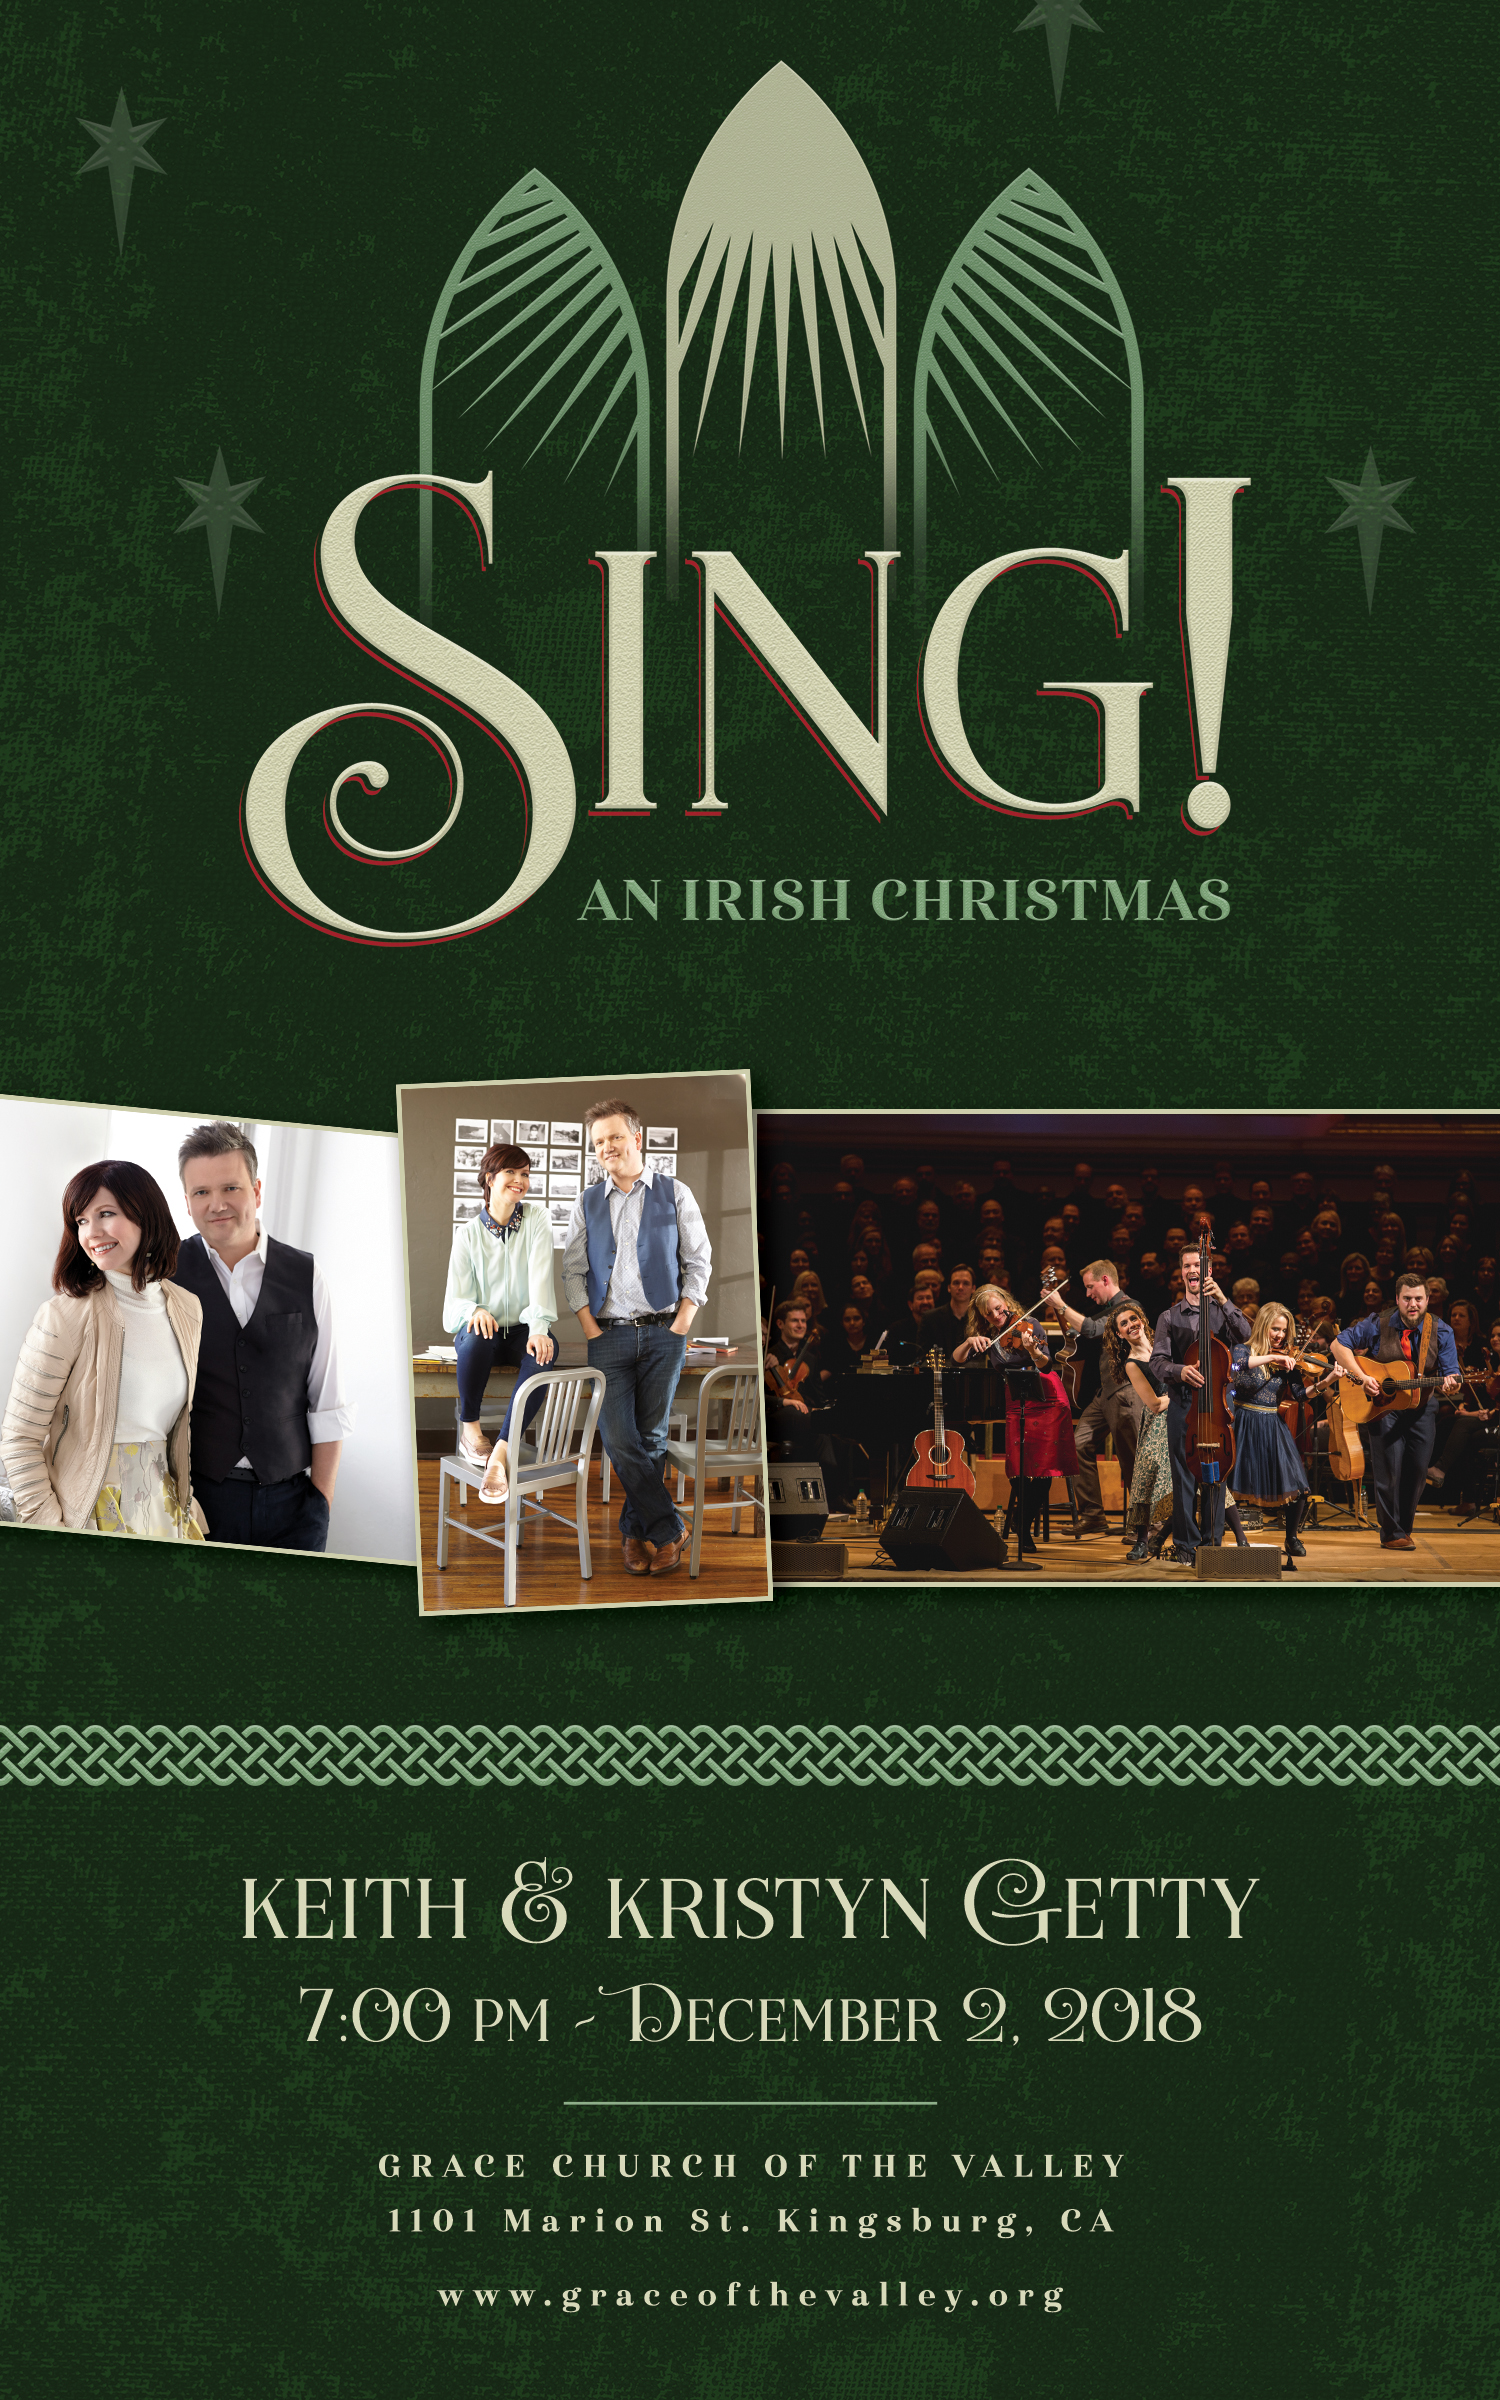 Grace Church of the Valley > Sing! An Irish Christmas